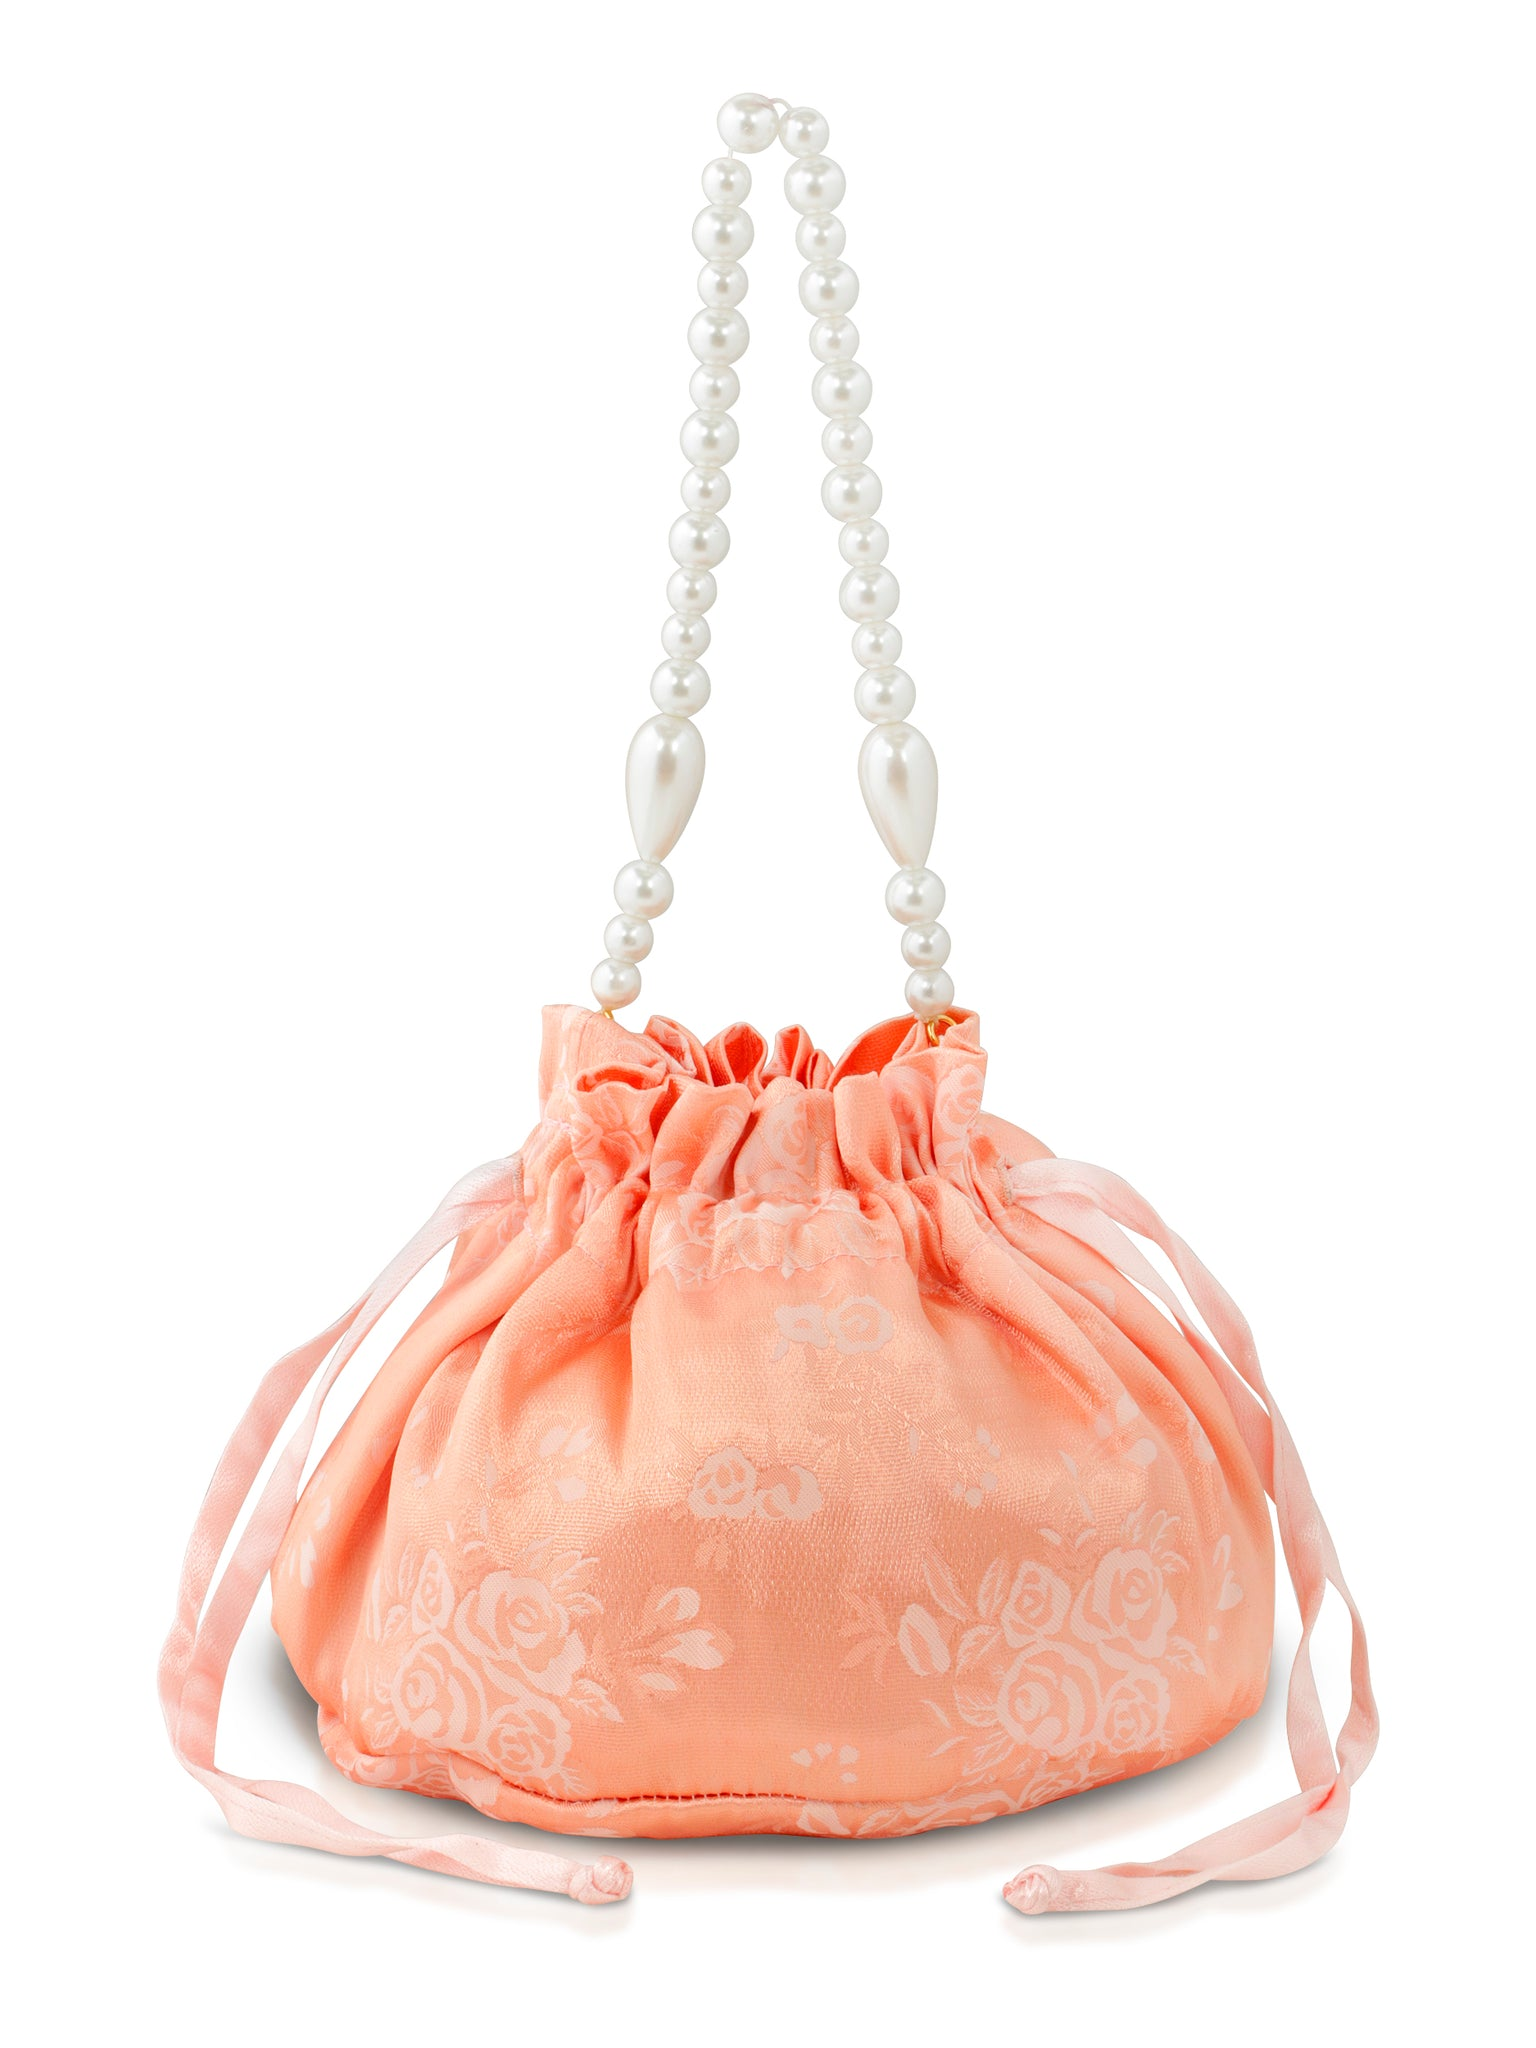 The Ziggy Bag - Peach Brocade